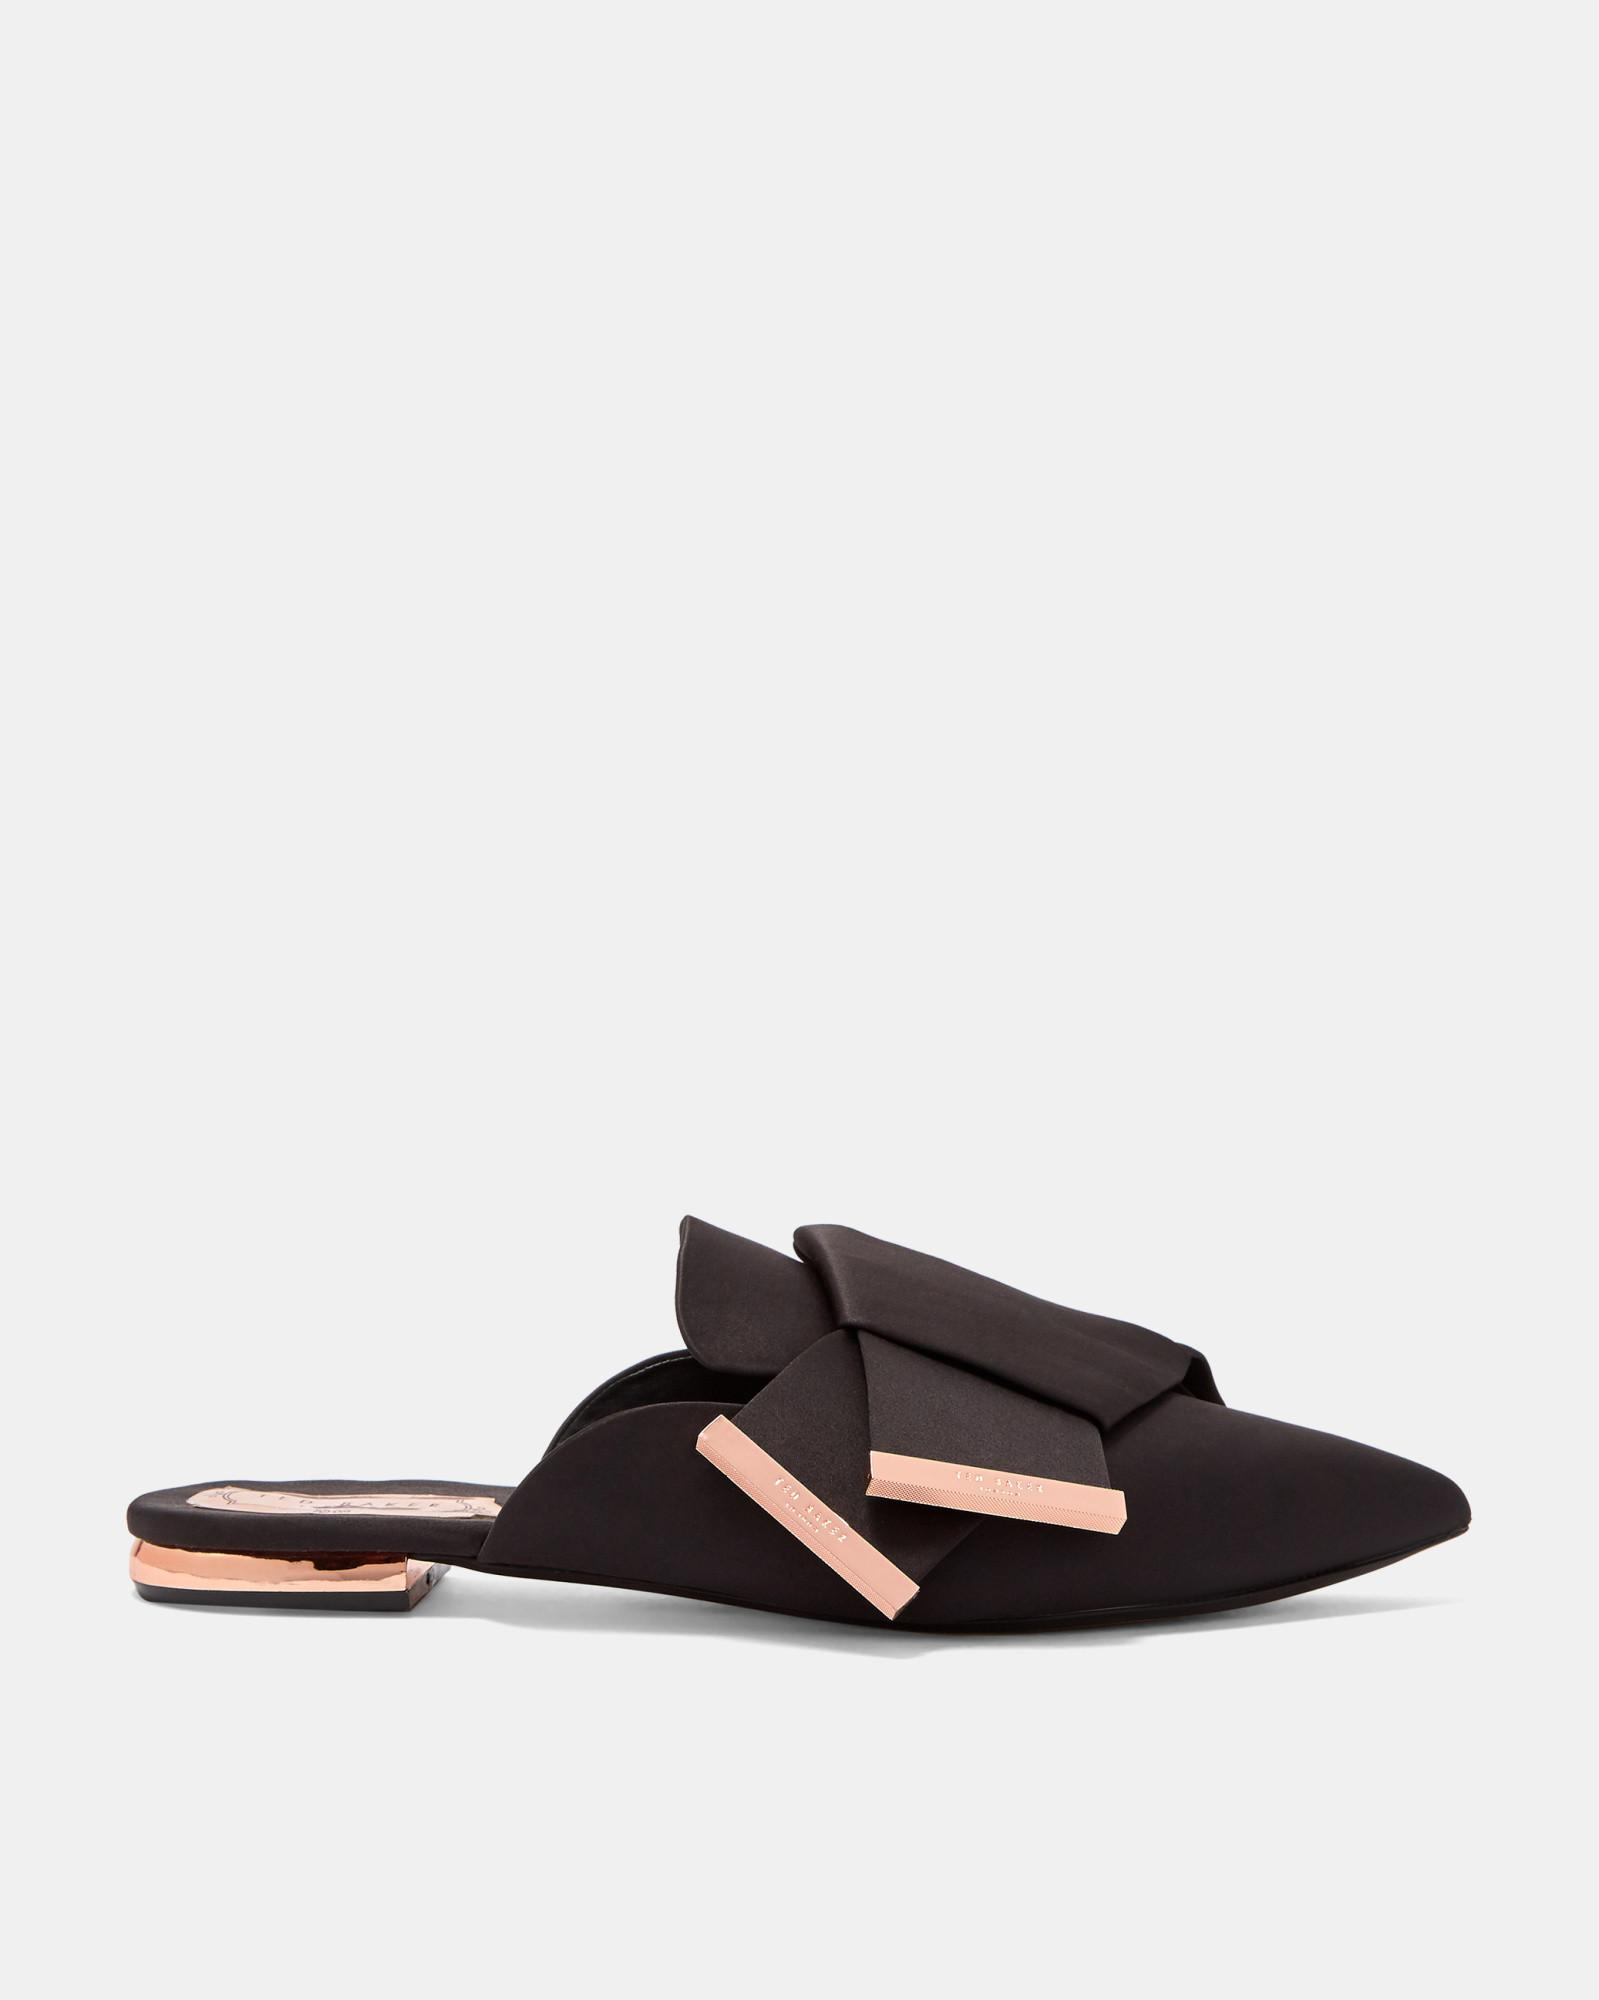 31f26624b Ted Baker Knotted Bow Backless Satin Loafers in Black - Lyst